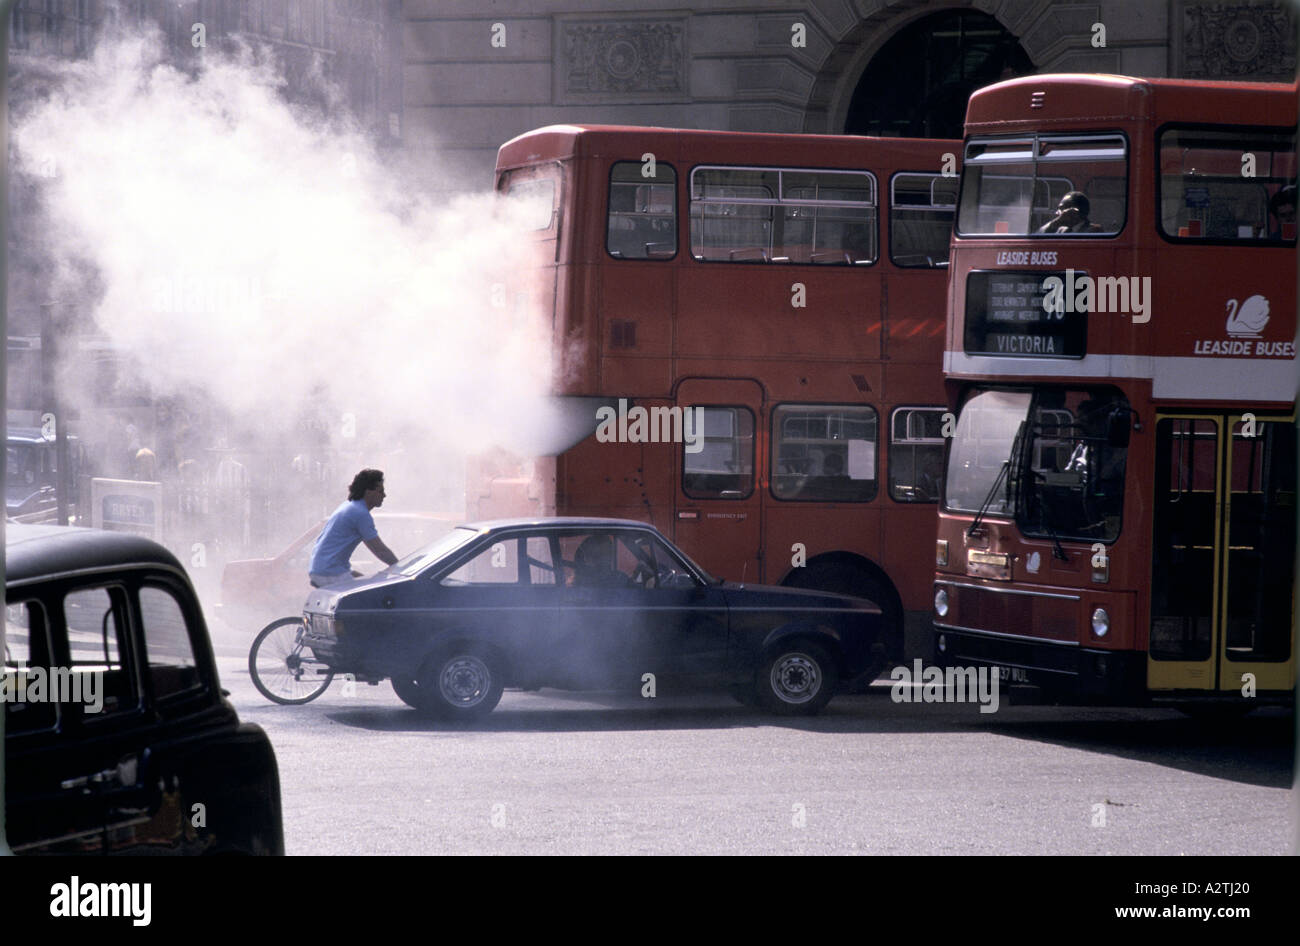 traffic air pollution london - Stock Image